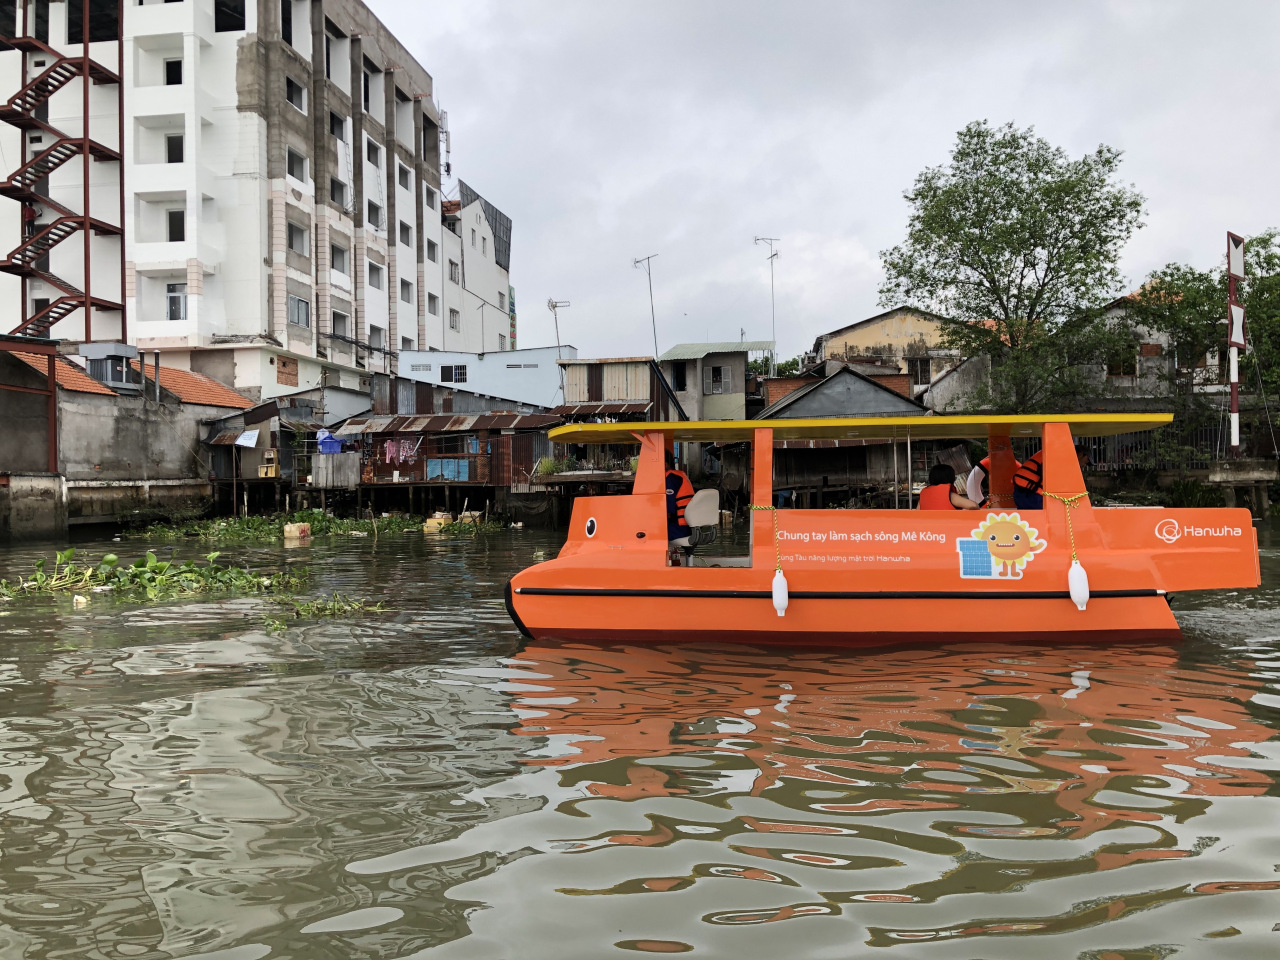 Pictured is a solar-powered trash skimmer boat provided by Hanwha Group. (Hanwha Group)